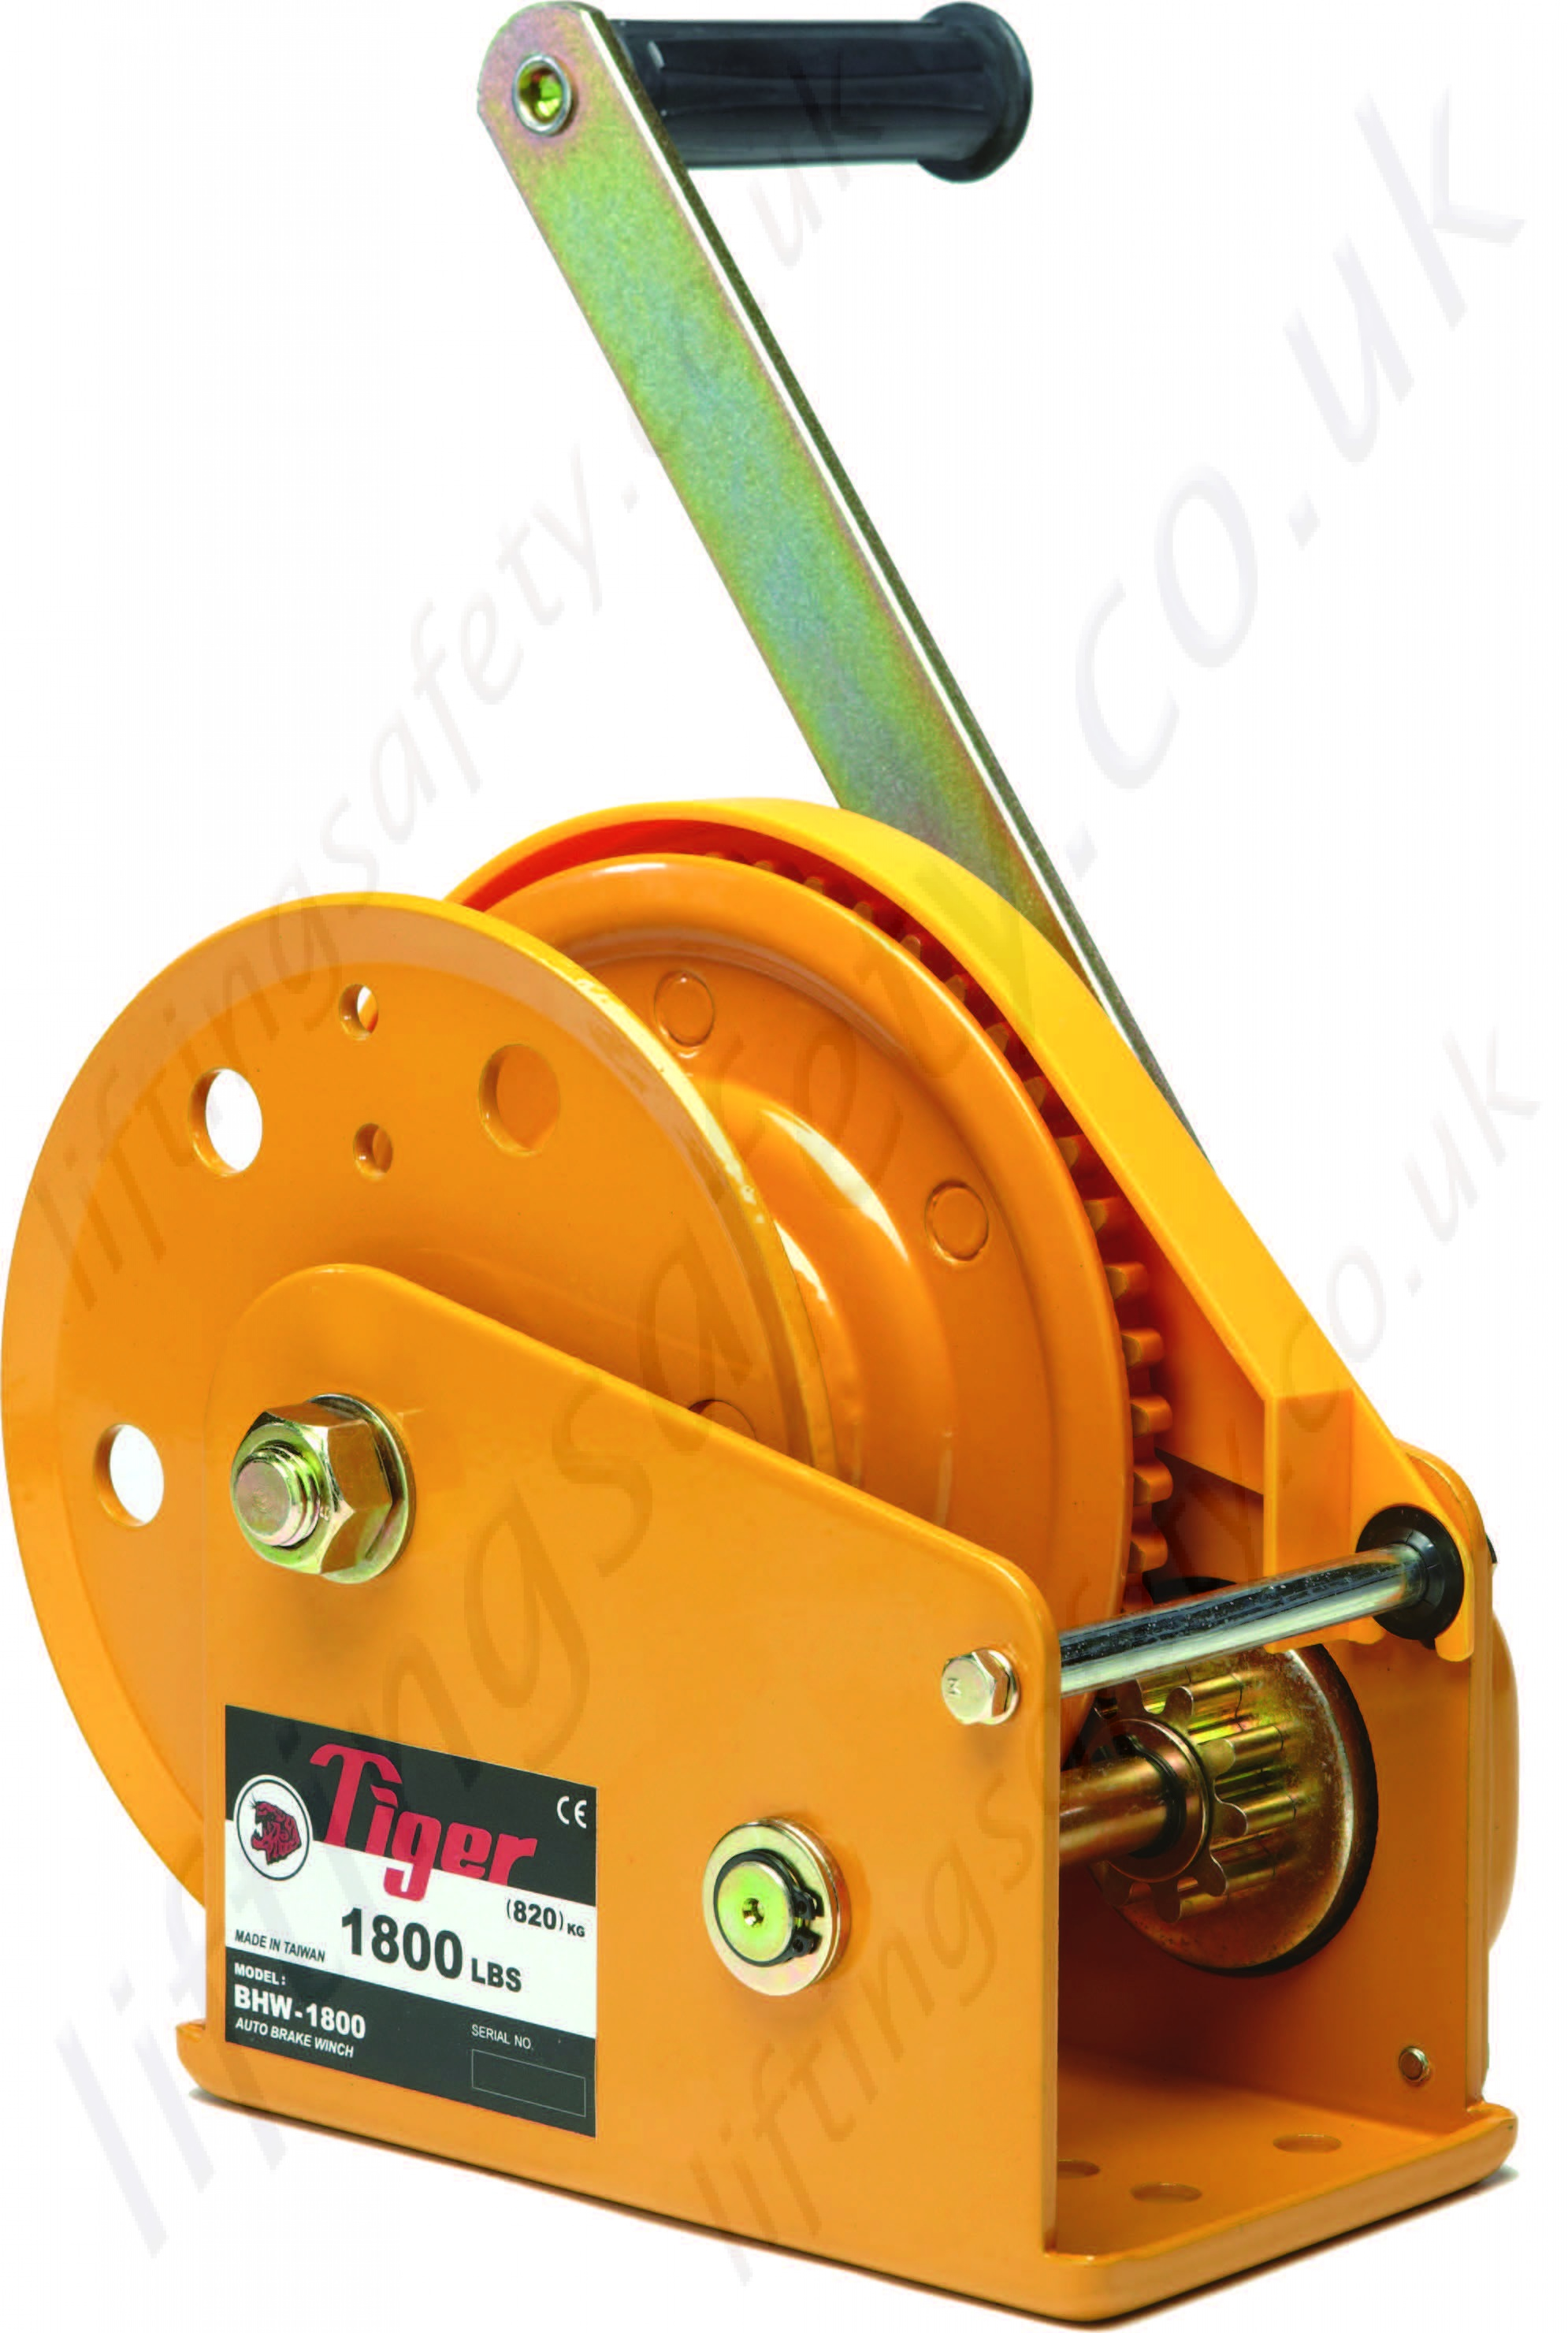 Tiger Quot Bhw Quot Wire Rope Winch Range From 180kg To 590kg